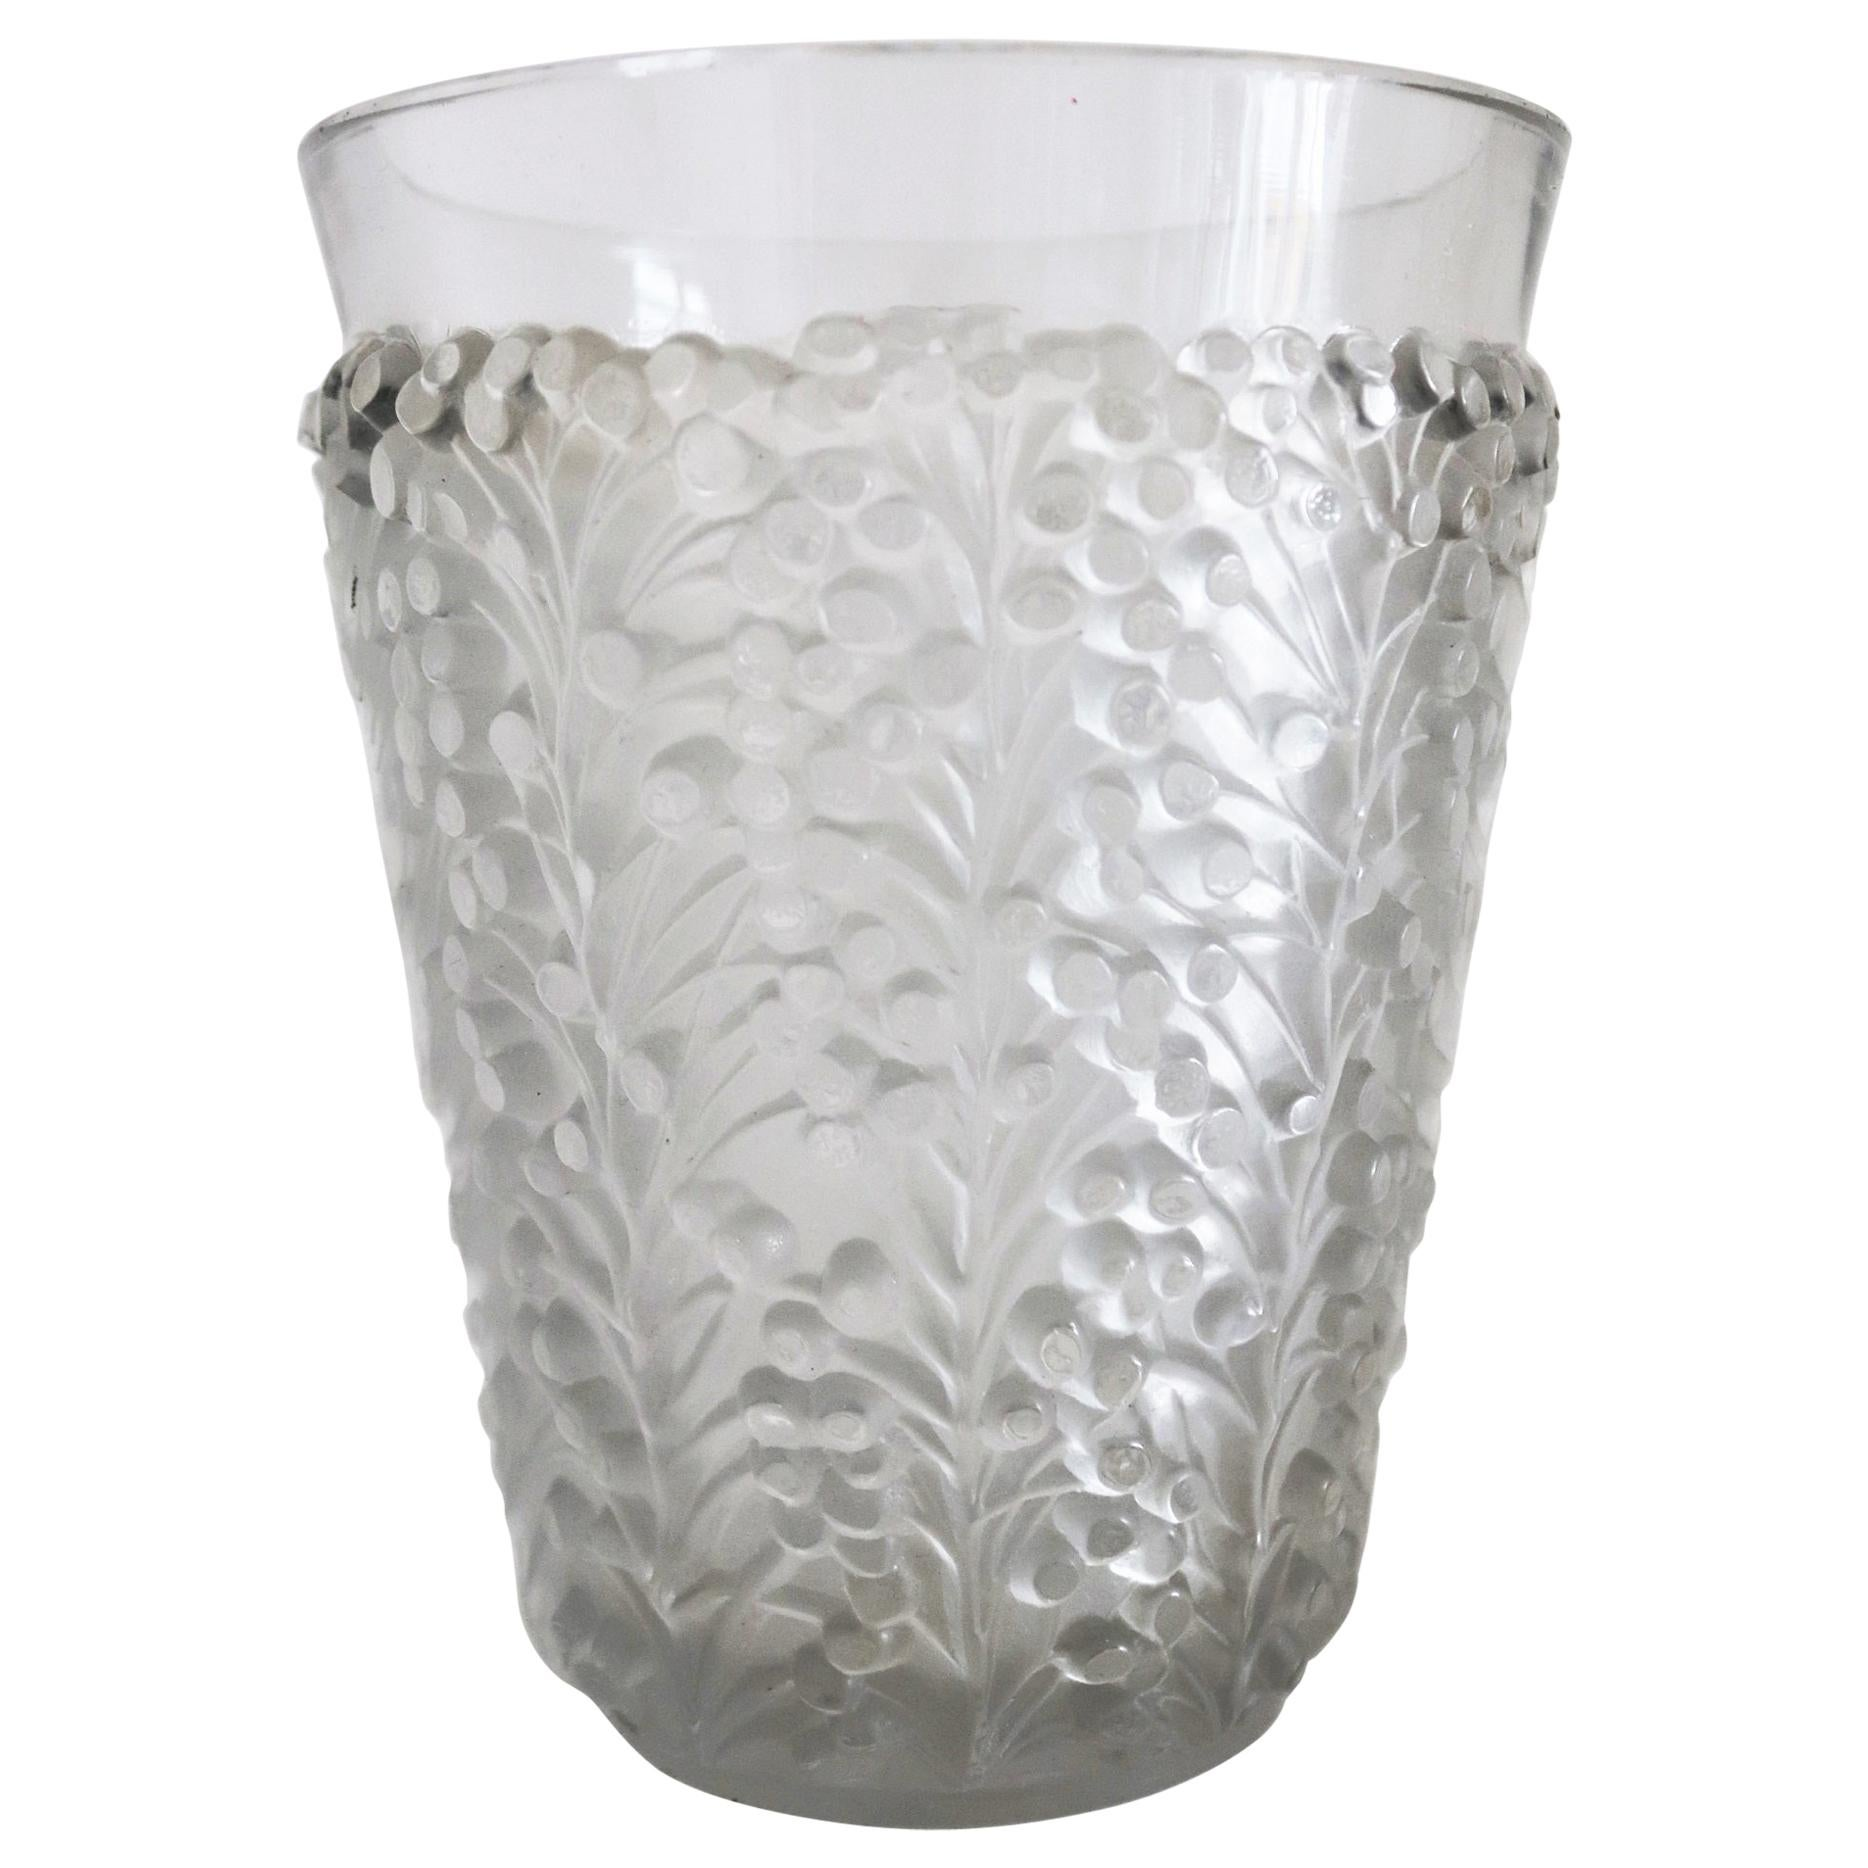 René Lalique Glass Vase with Frosted Leaves and Berries, France, circa 1937